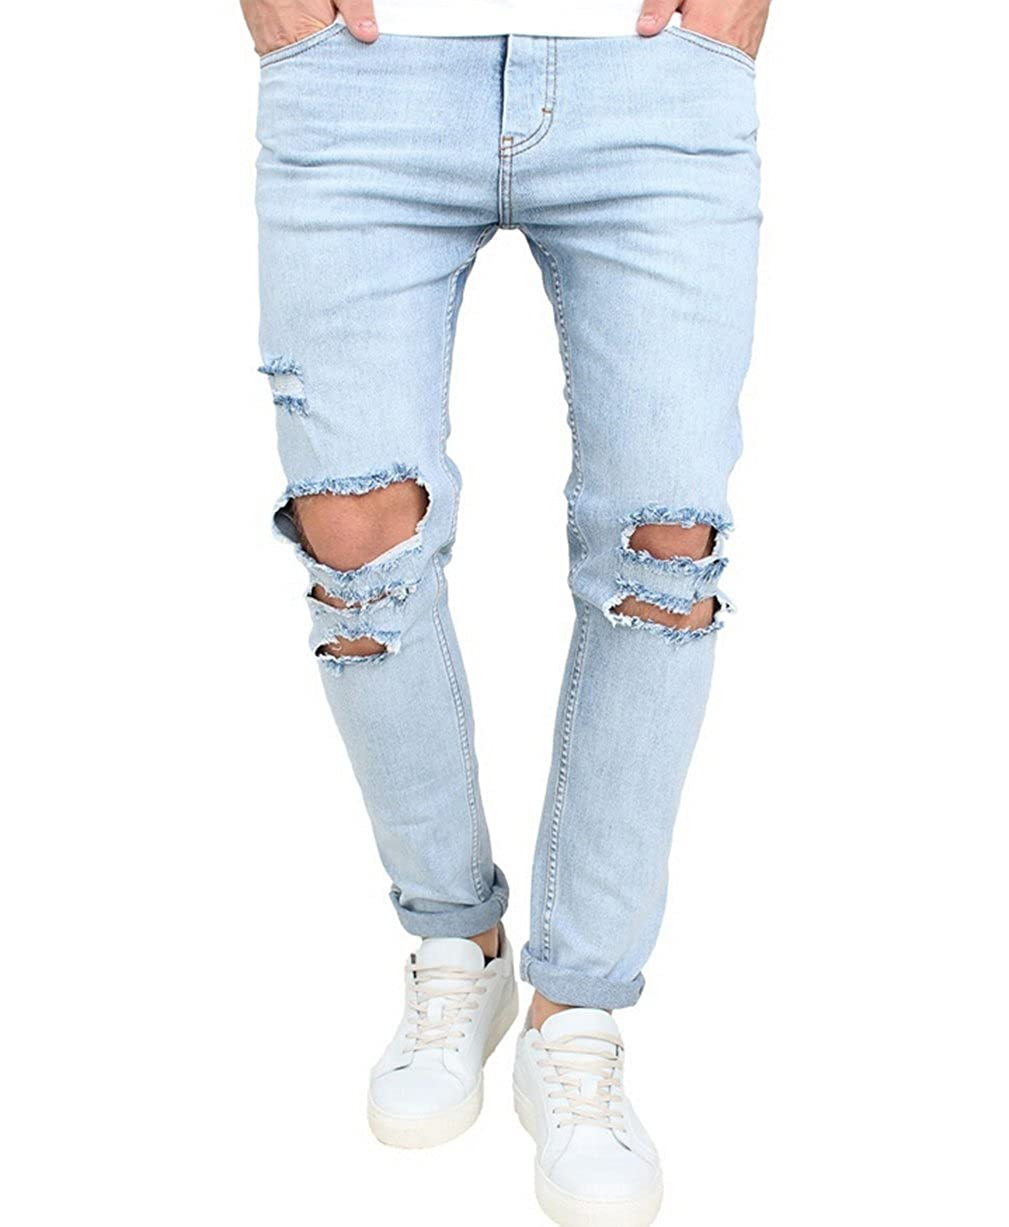 4df79996beac NOTE  We are fulfilled by Amazon and delivered within 2 days by Dovee.  Cotton + Denim. Machine or hand wash with like color. Do not bleach